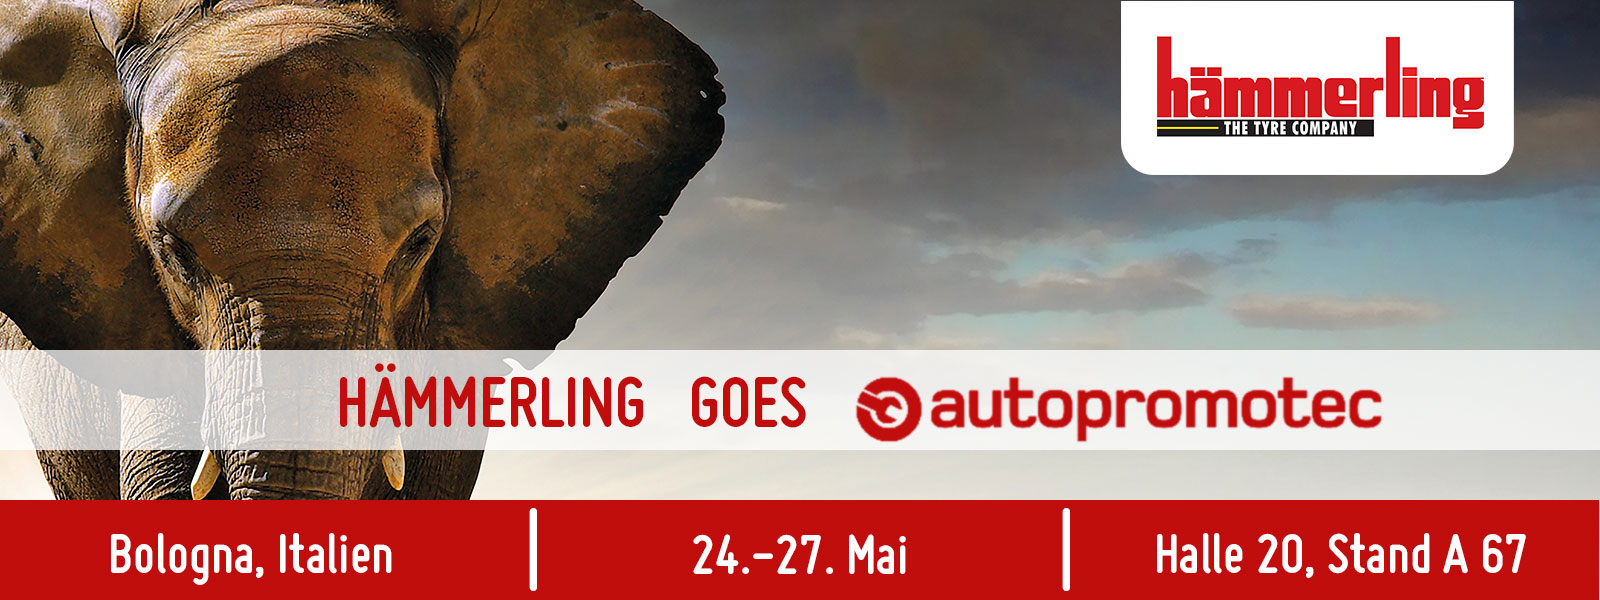 Messe Stand Autopromotec